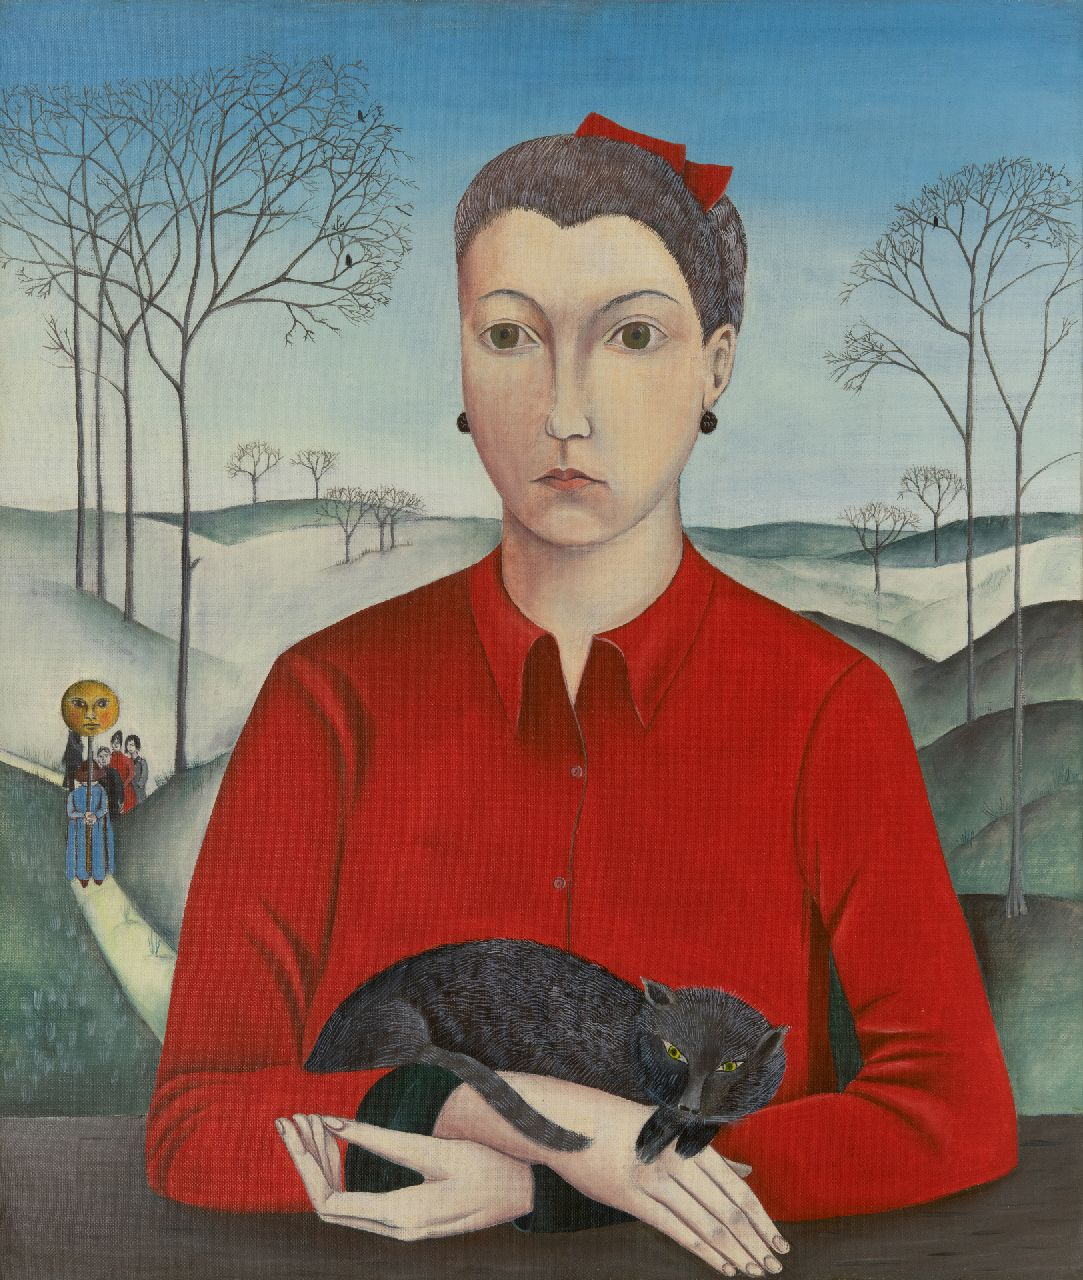 Dieter Matthäus | Woman with red blouse and cat, oil on canvas, 65.2 x 55.3 cm, signed on the reverse and dated on the reverse 9 november 1964